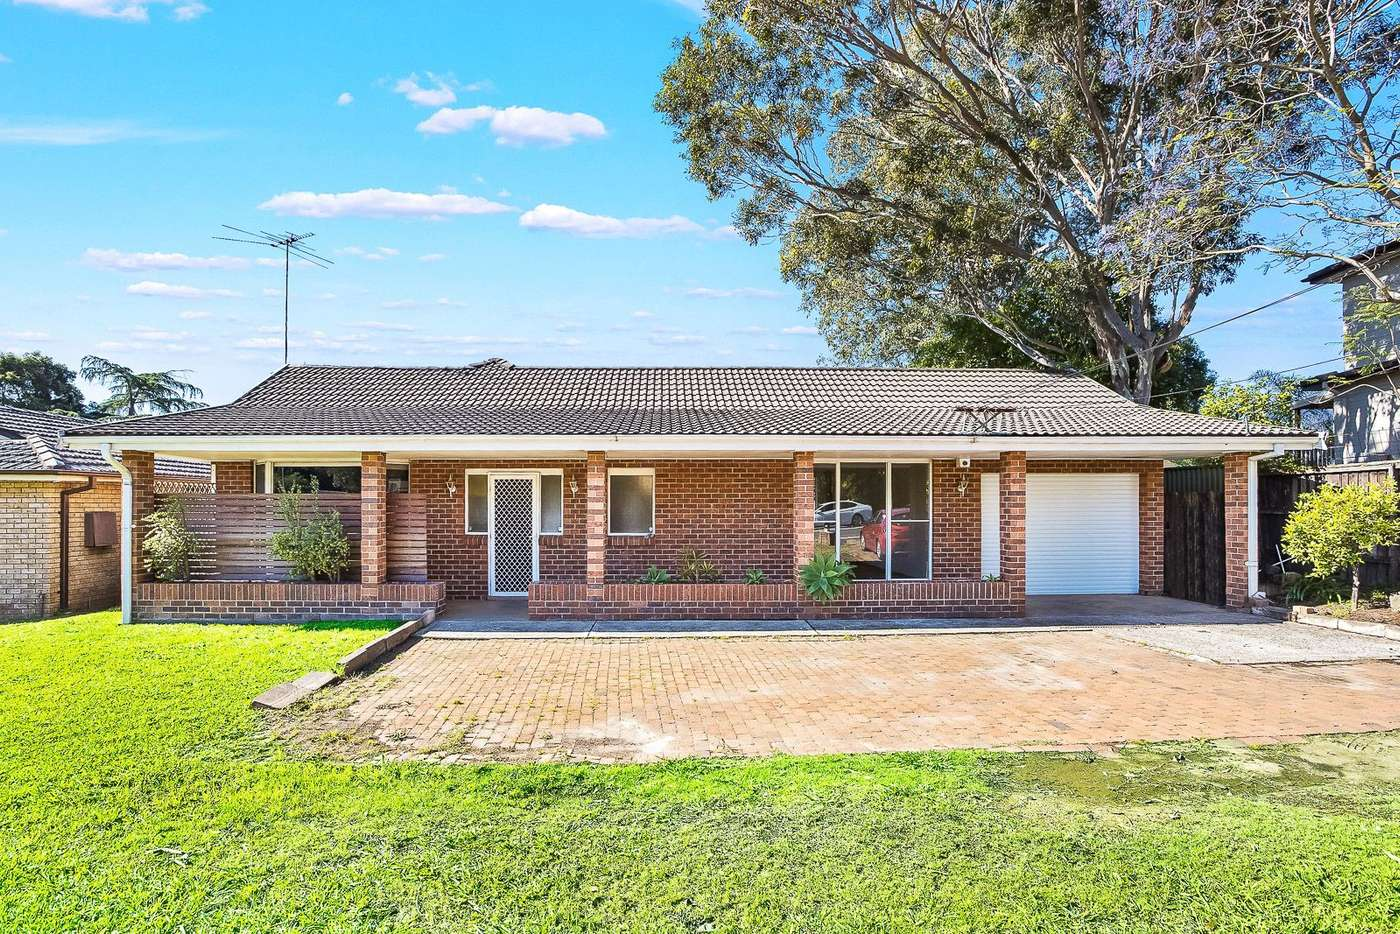 Main view of Homely house listing, 95 Seven Hills Road, Baulkham Hills NSW 2153